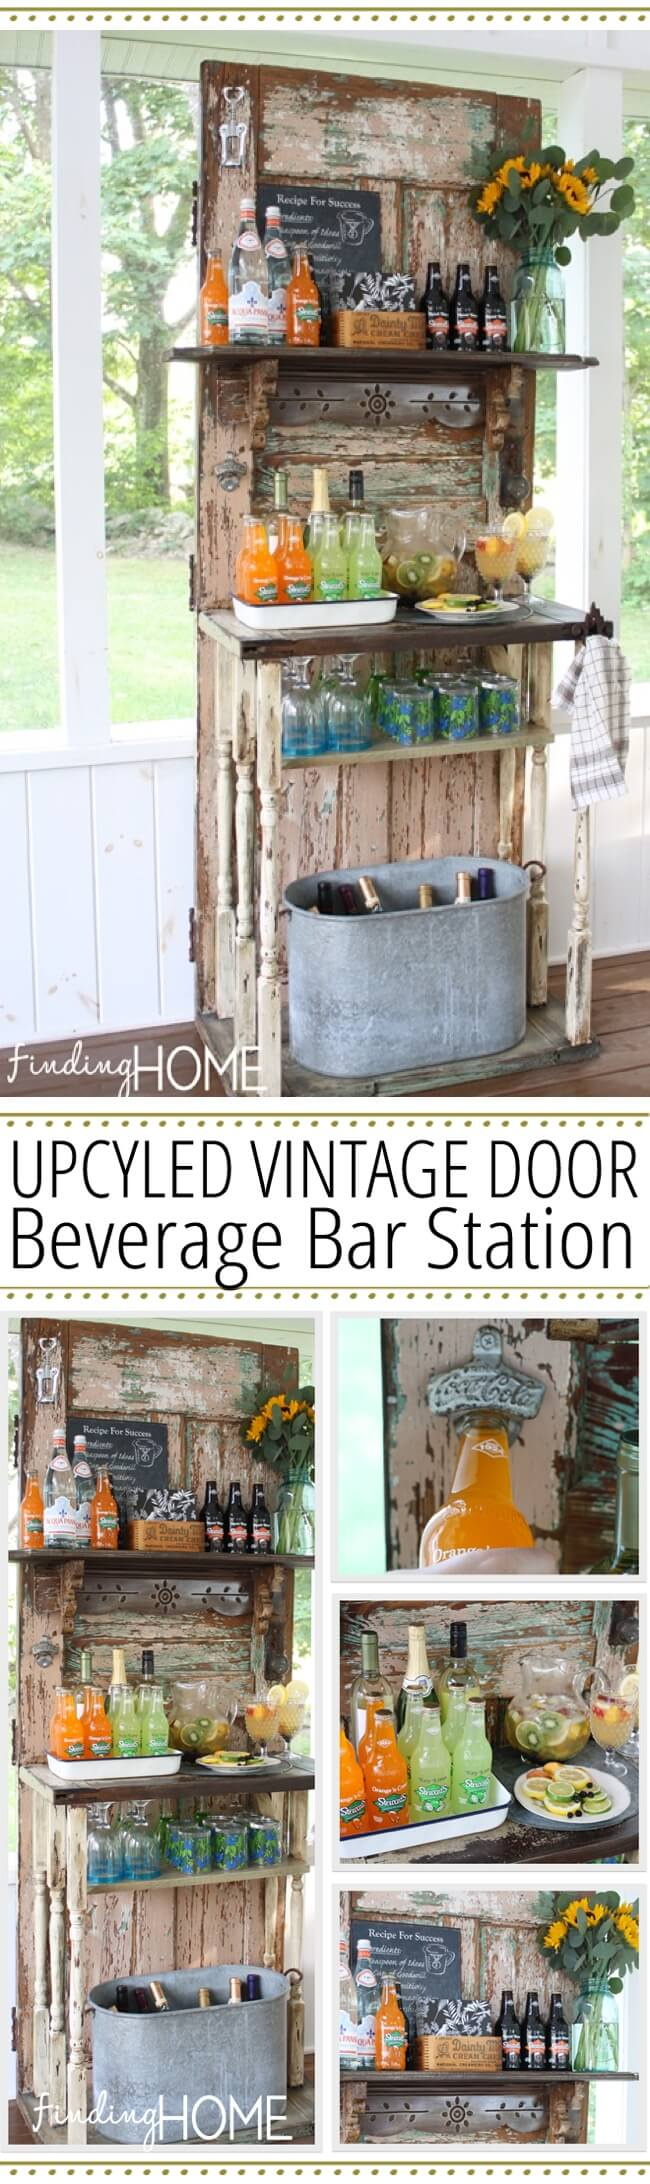 Upcycled Vintage Door Beverage Bar Station | Creative Repurposed Old Door Ideas & Projects For Your Backyard